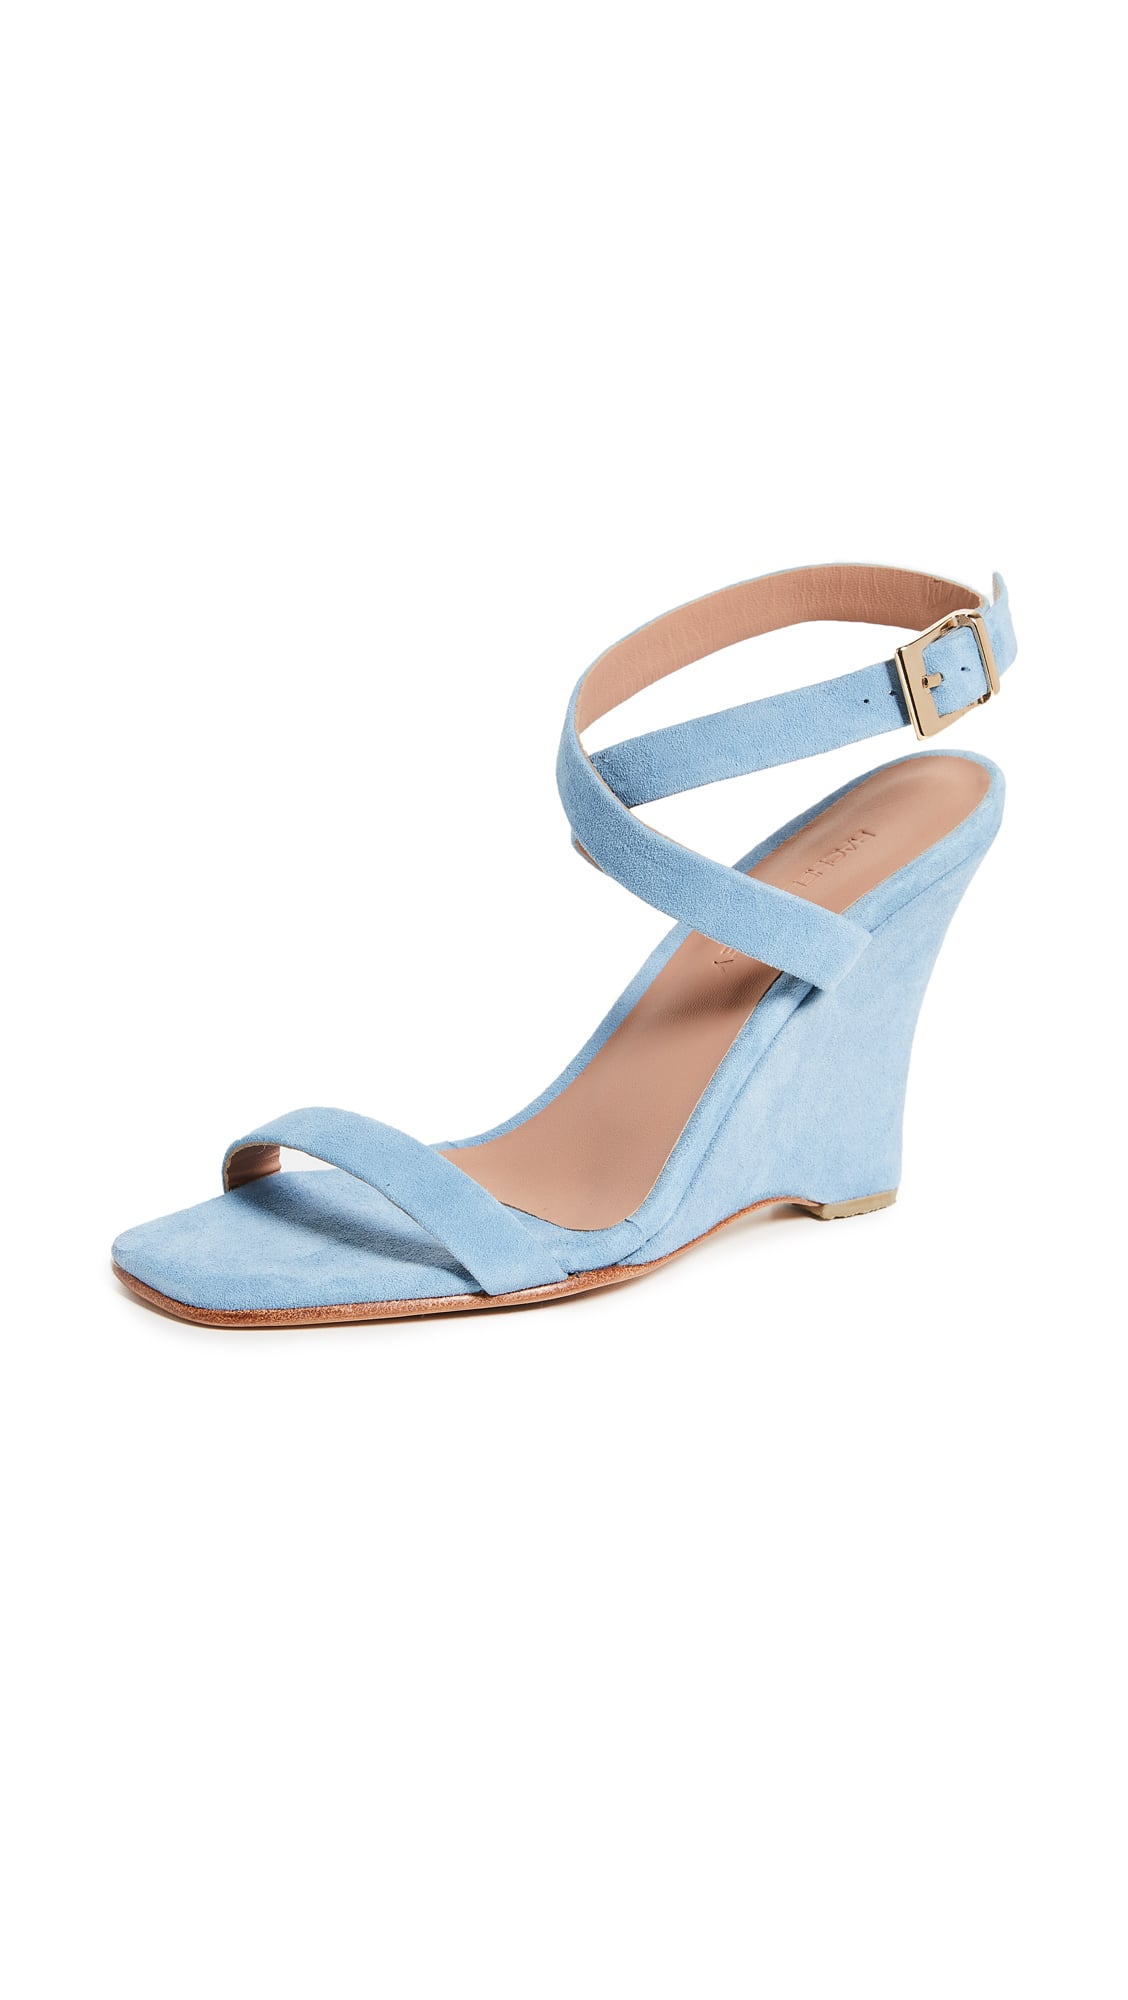 The Baby Blue Wedge | We Can't Keep Our